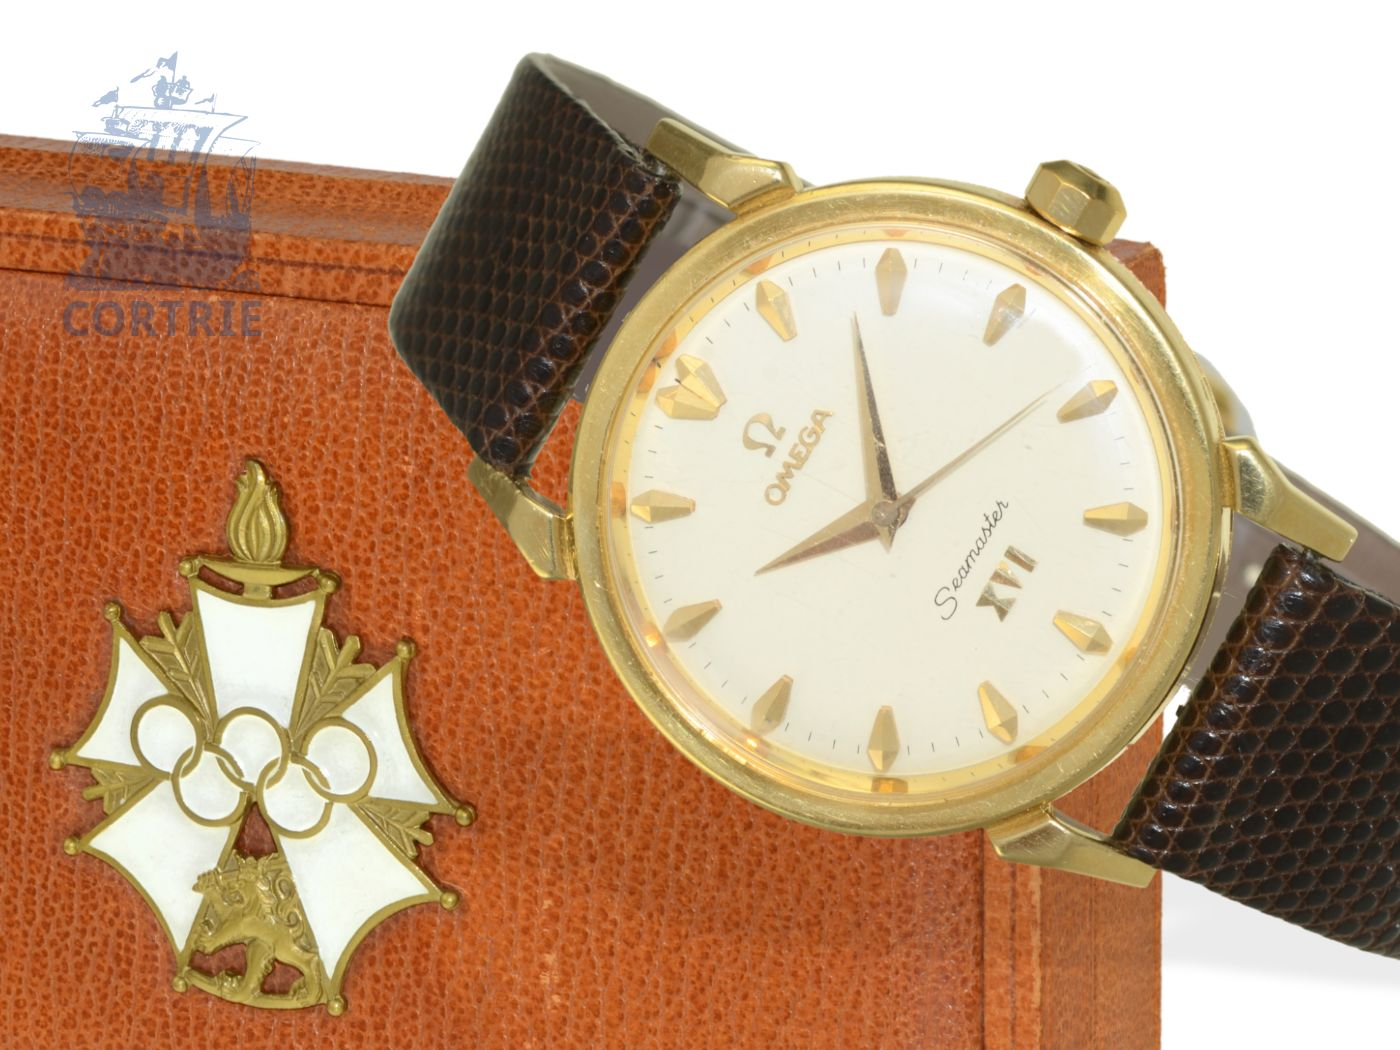 Wristwatch: Omega rarity, vintage Seamaster XVI OLYMPIA Melbourne 1956, 18 K gold, with original box-